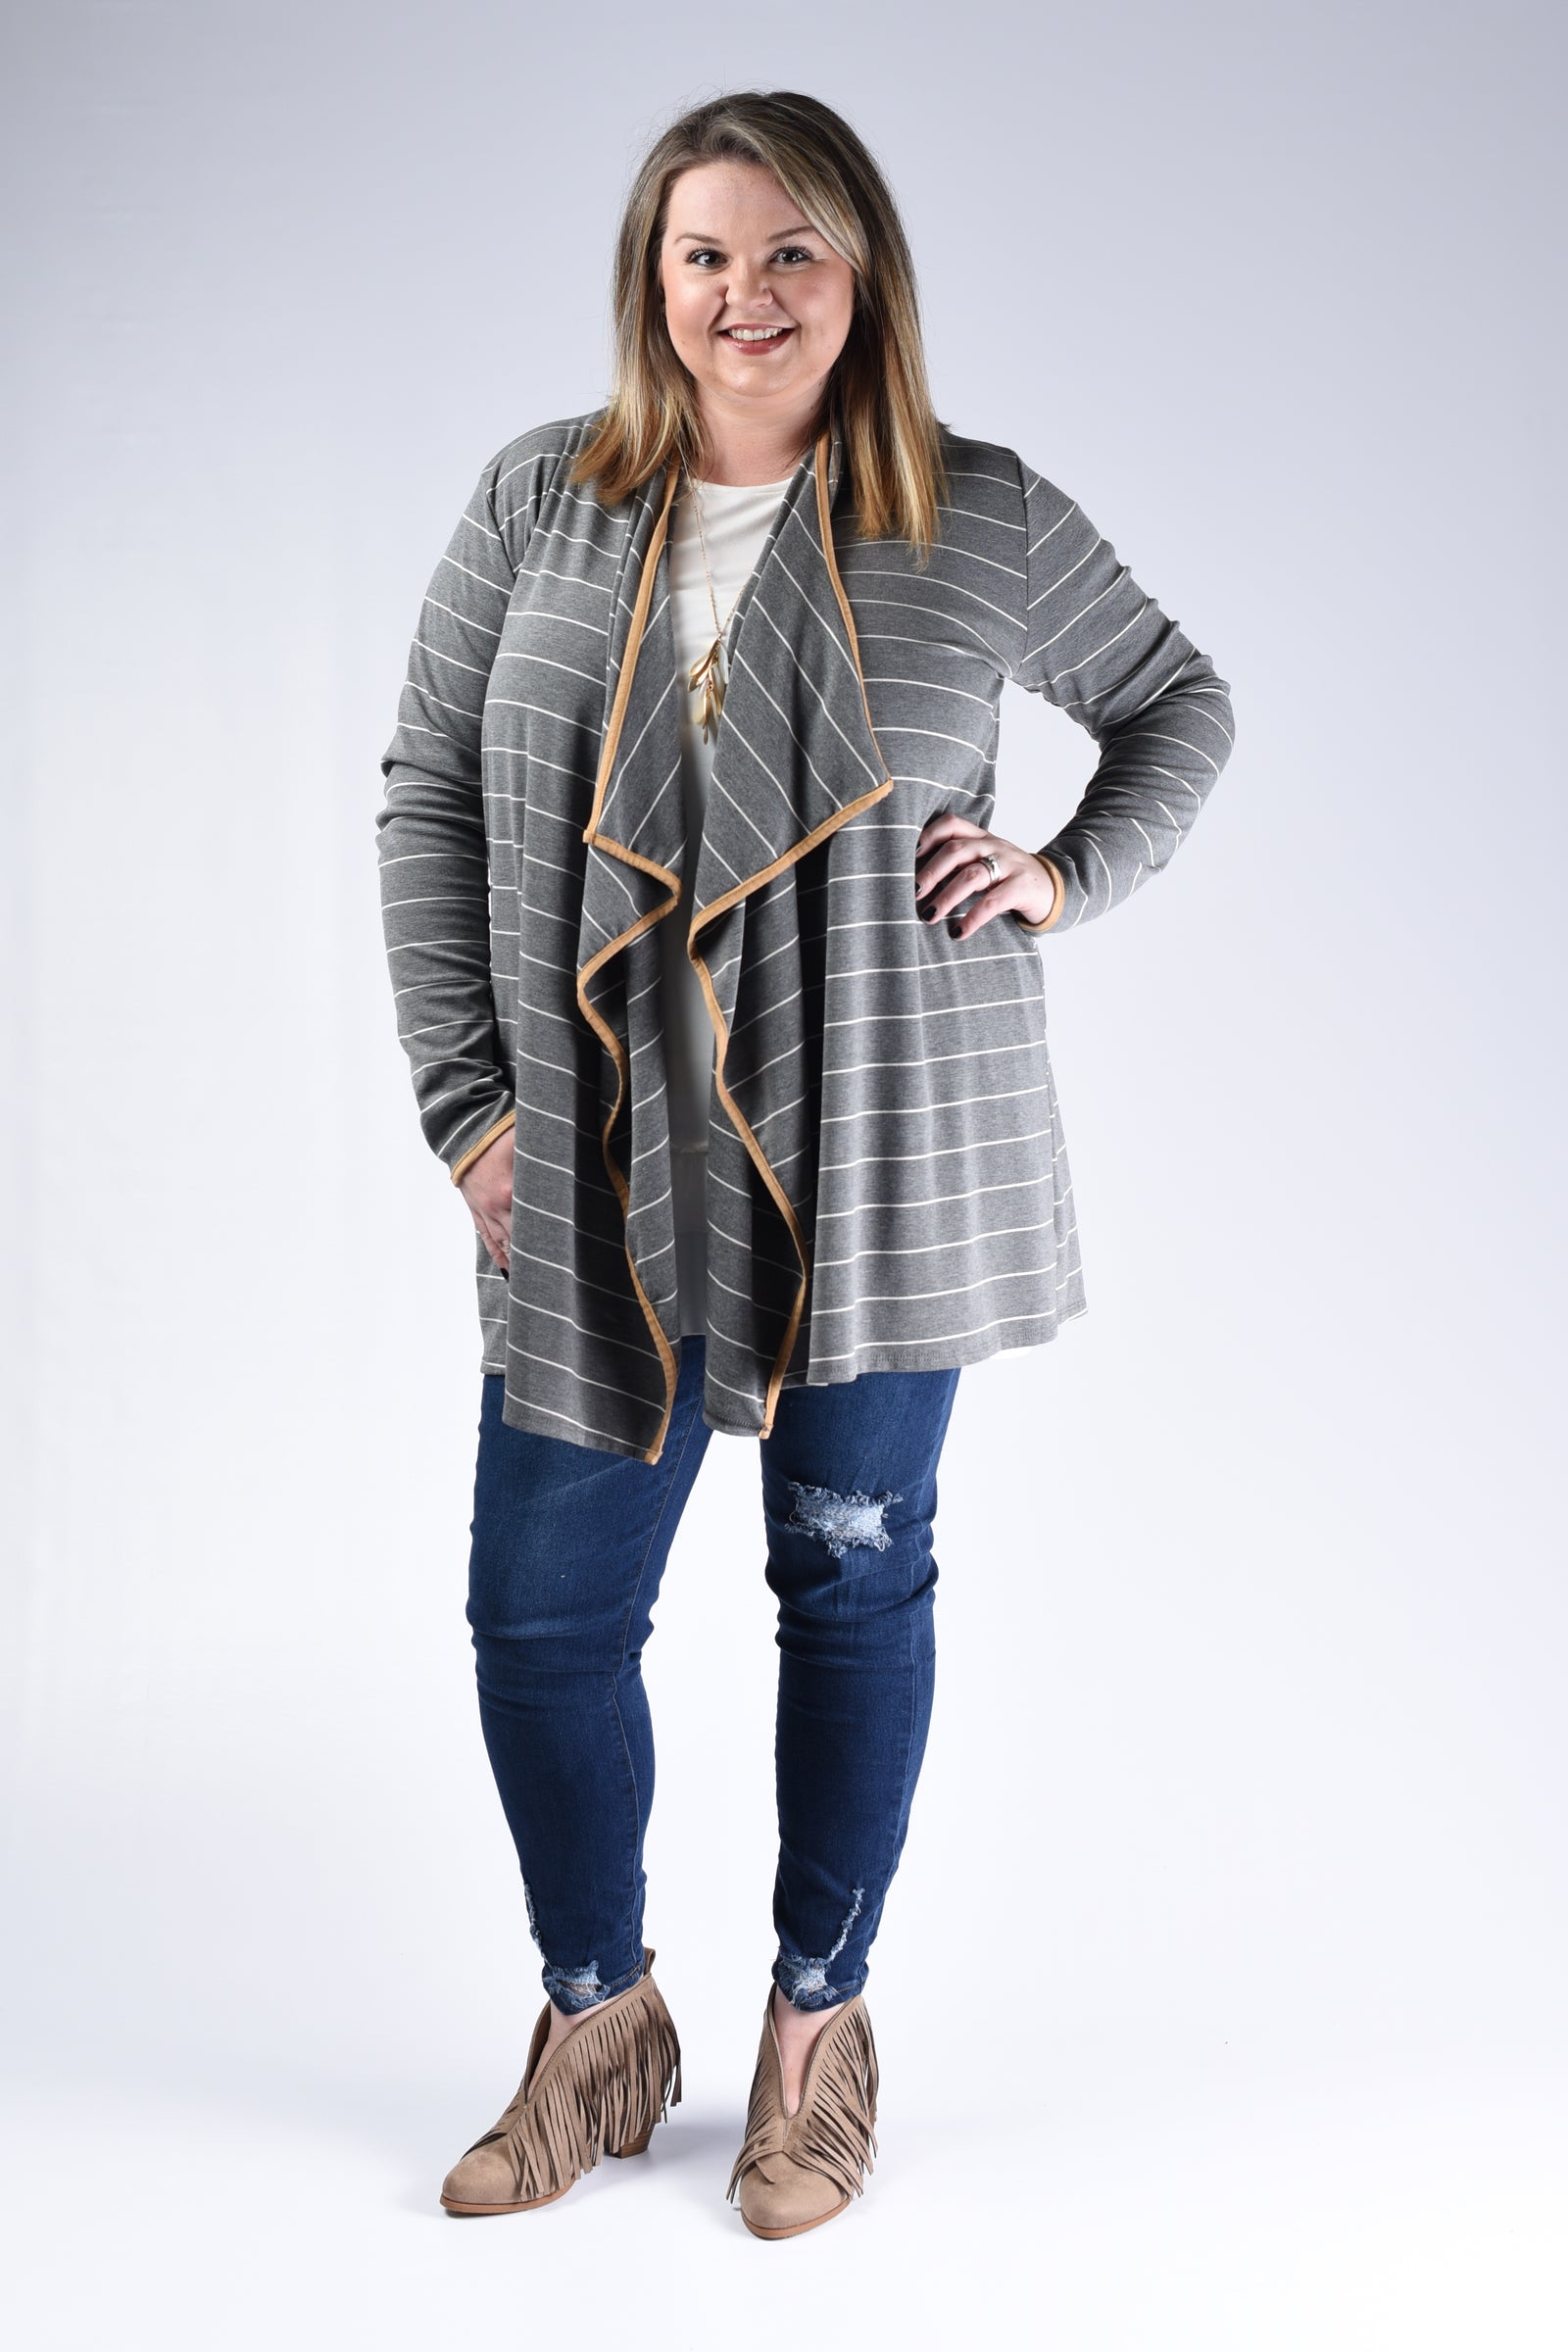 Grey Stripe & Taupe Edge Cardigan - www.mycurvystore.com - Curvy Boutique - Plus Size